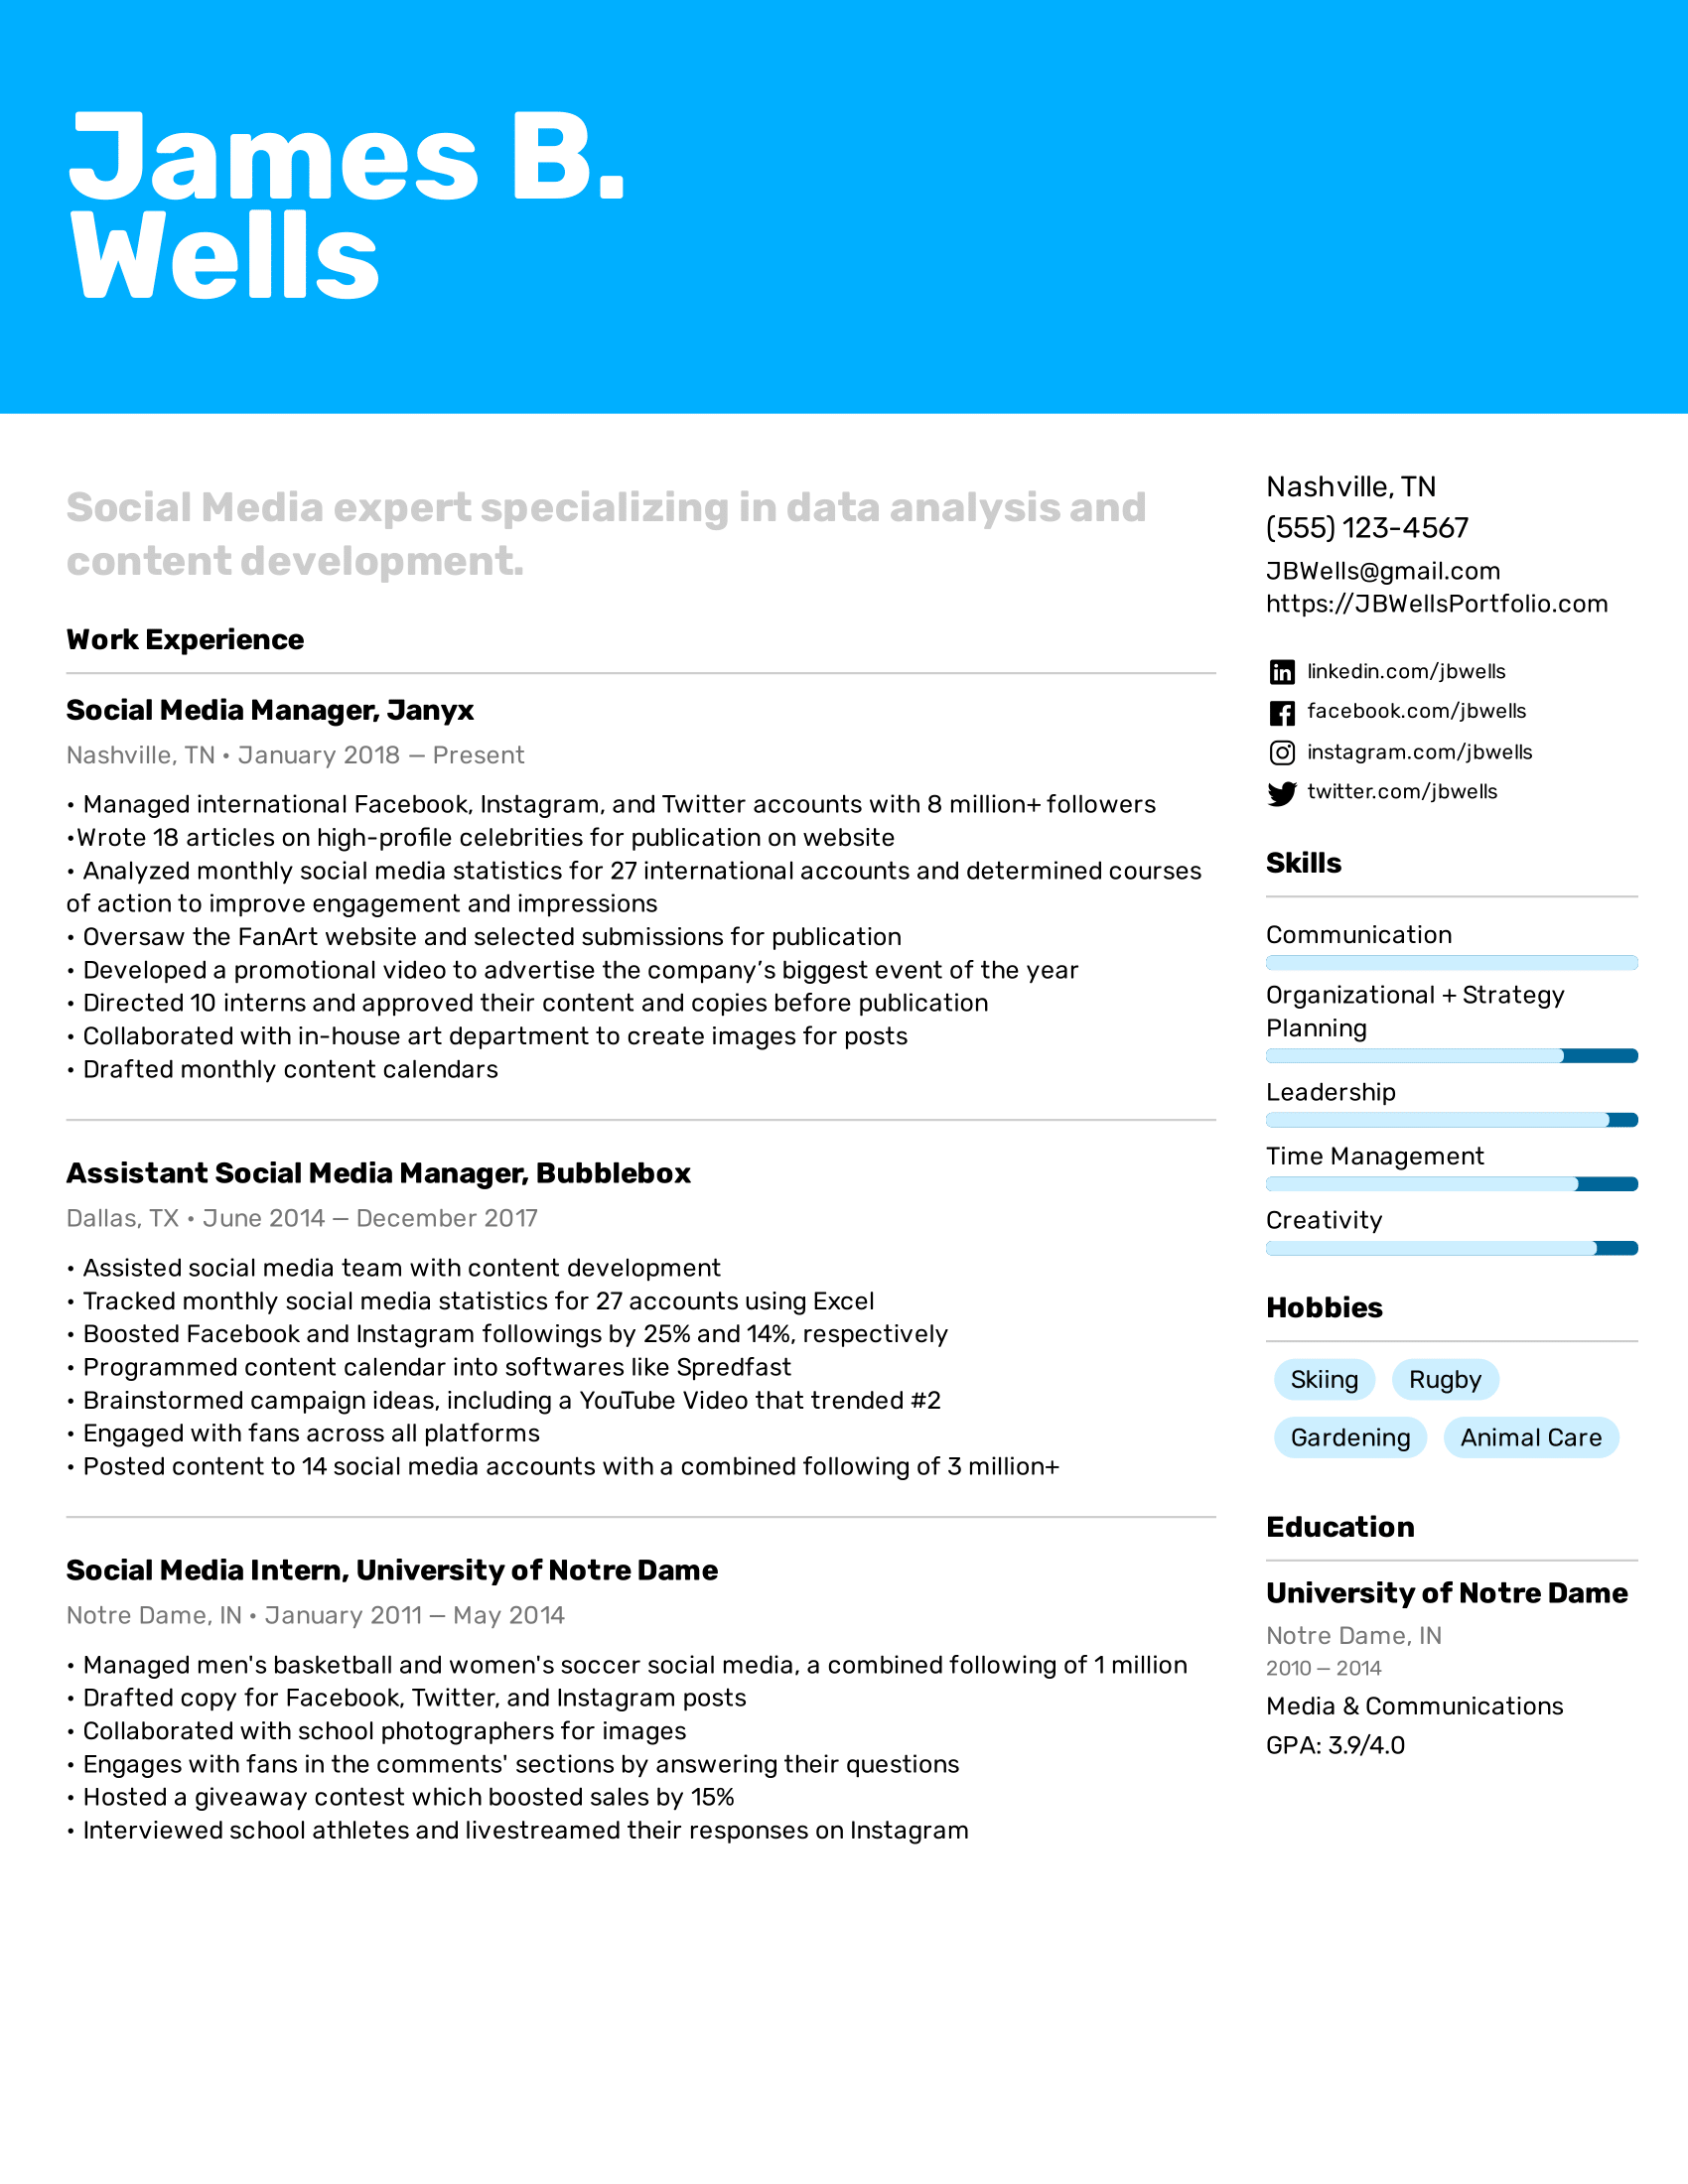 Social Media Manager Resume Example in 2020 Resume